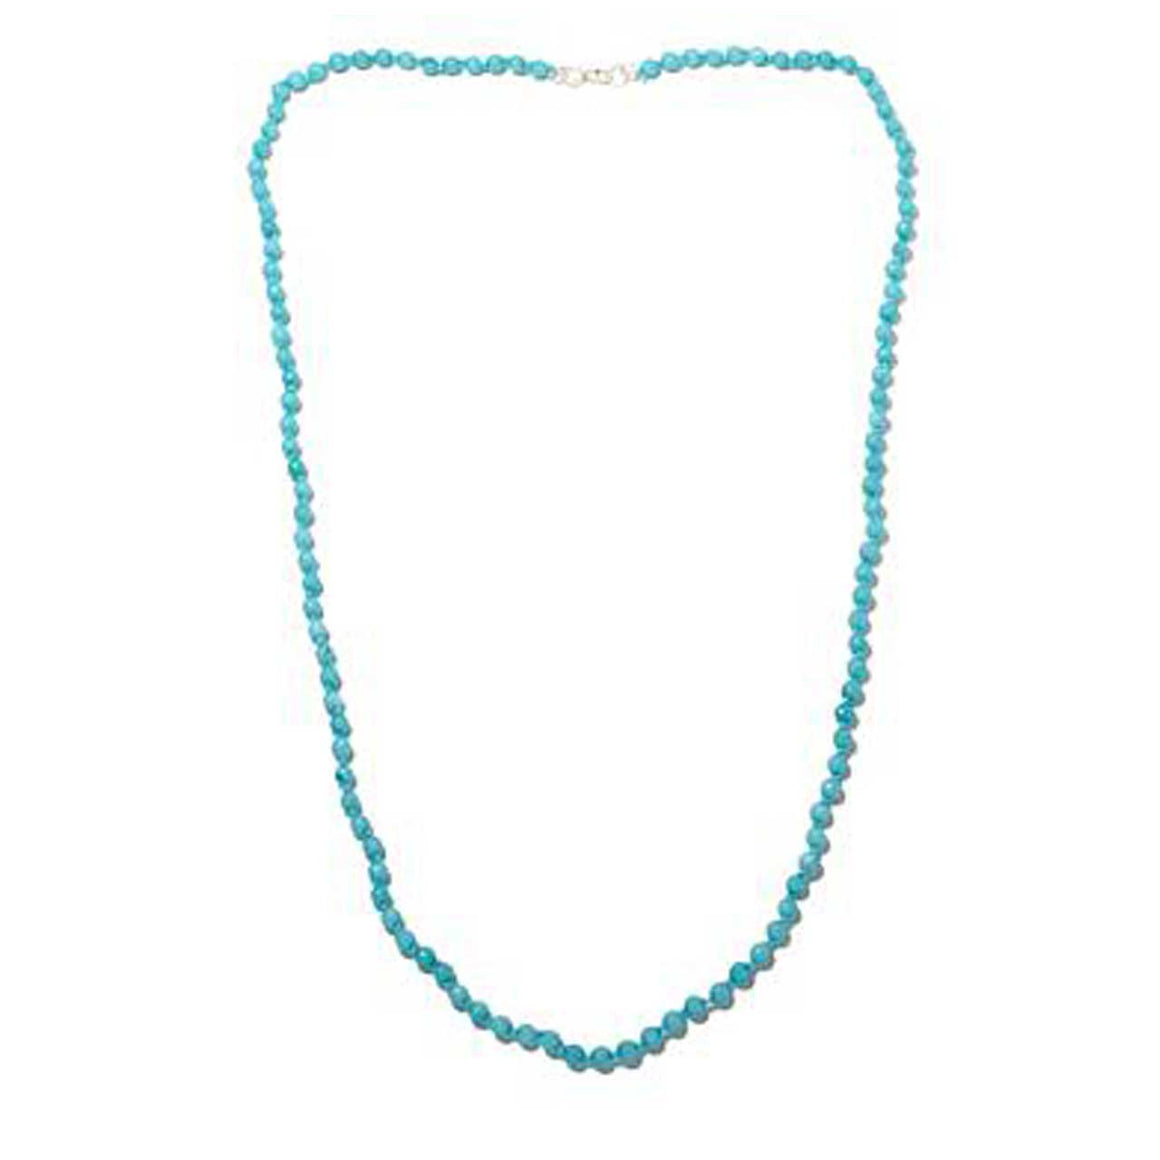 Turquoise Colored Quartz Gemstone Beaded Necklace 36""